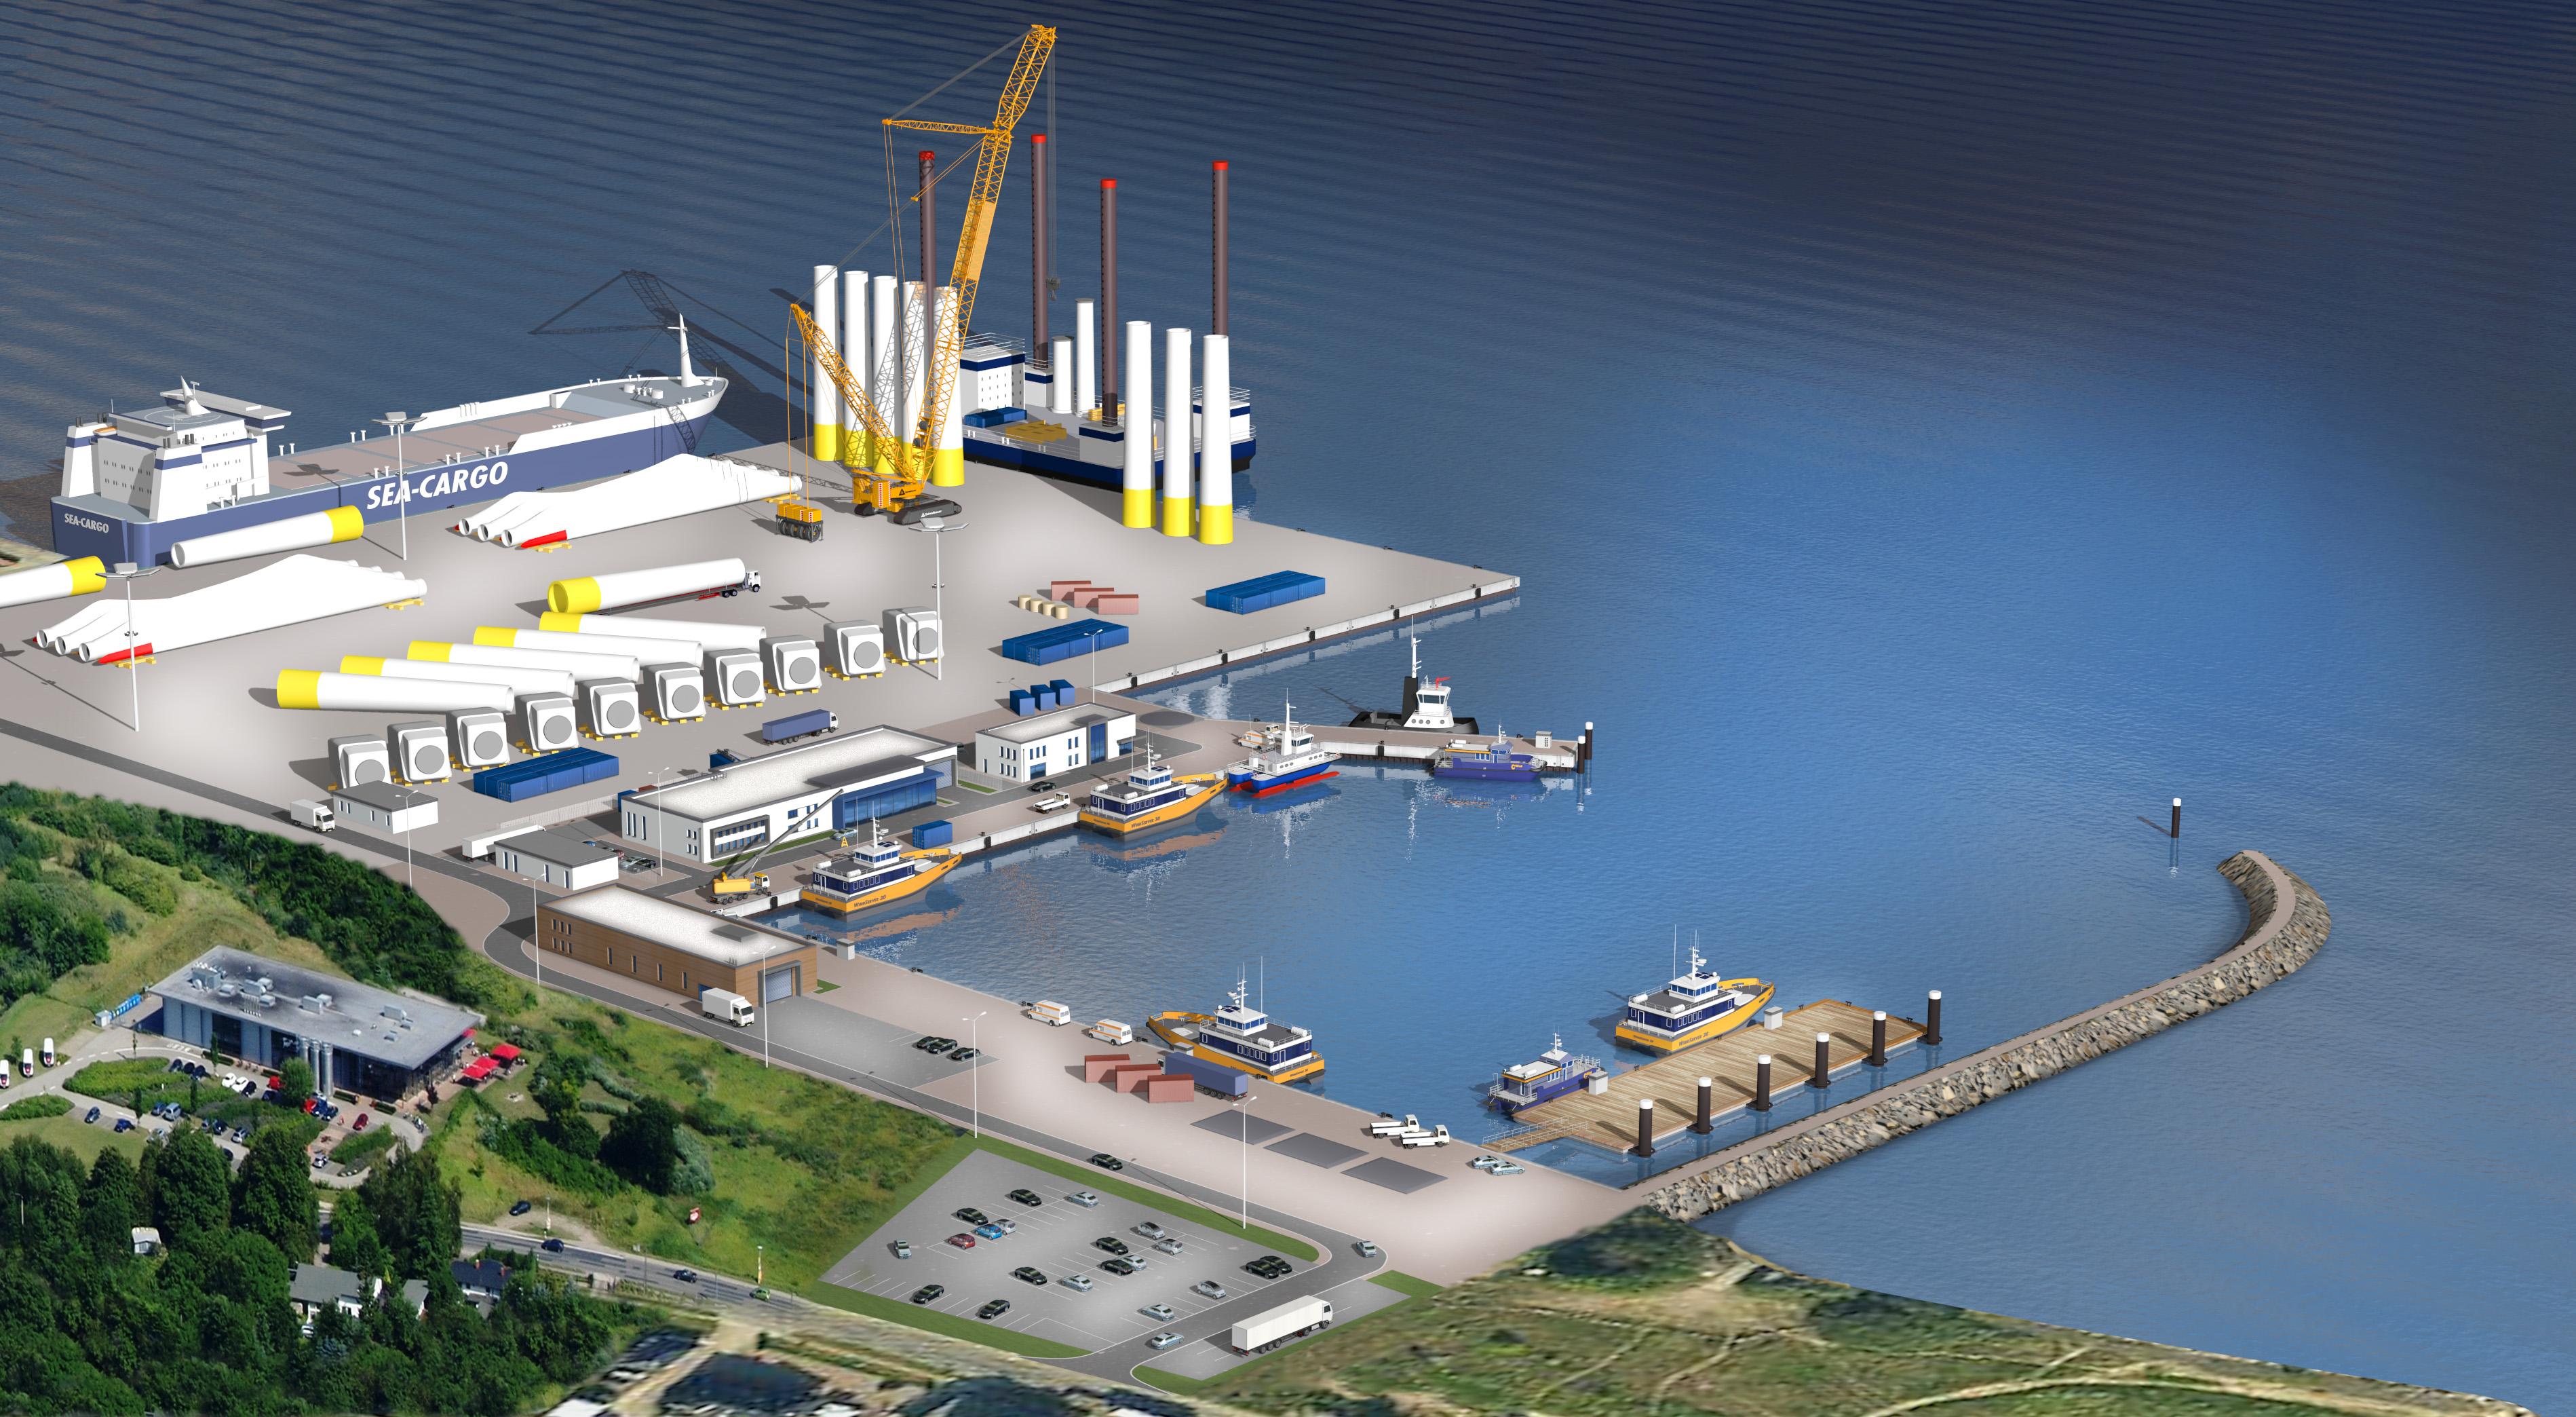 Arkona_CTV-Hafen-Luftbild-01 DNV GL Nets Project Certification For E.ON's Arkona Offshore Wind